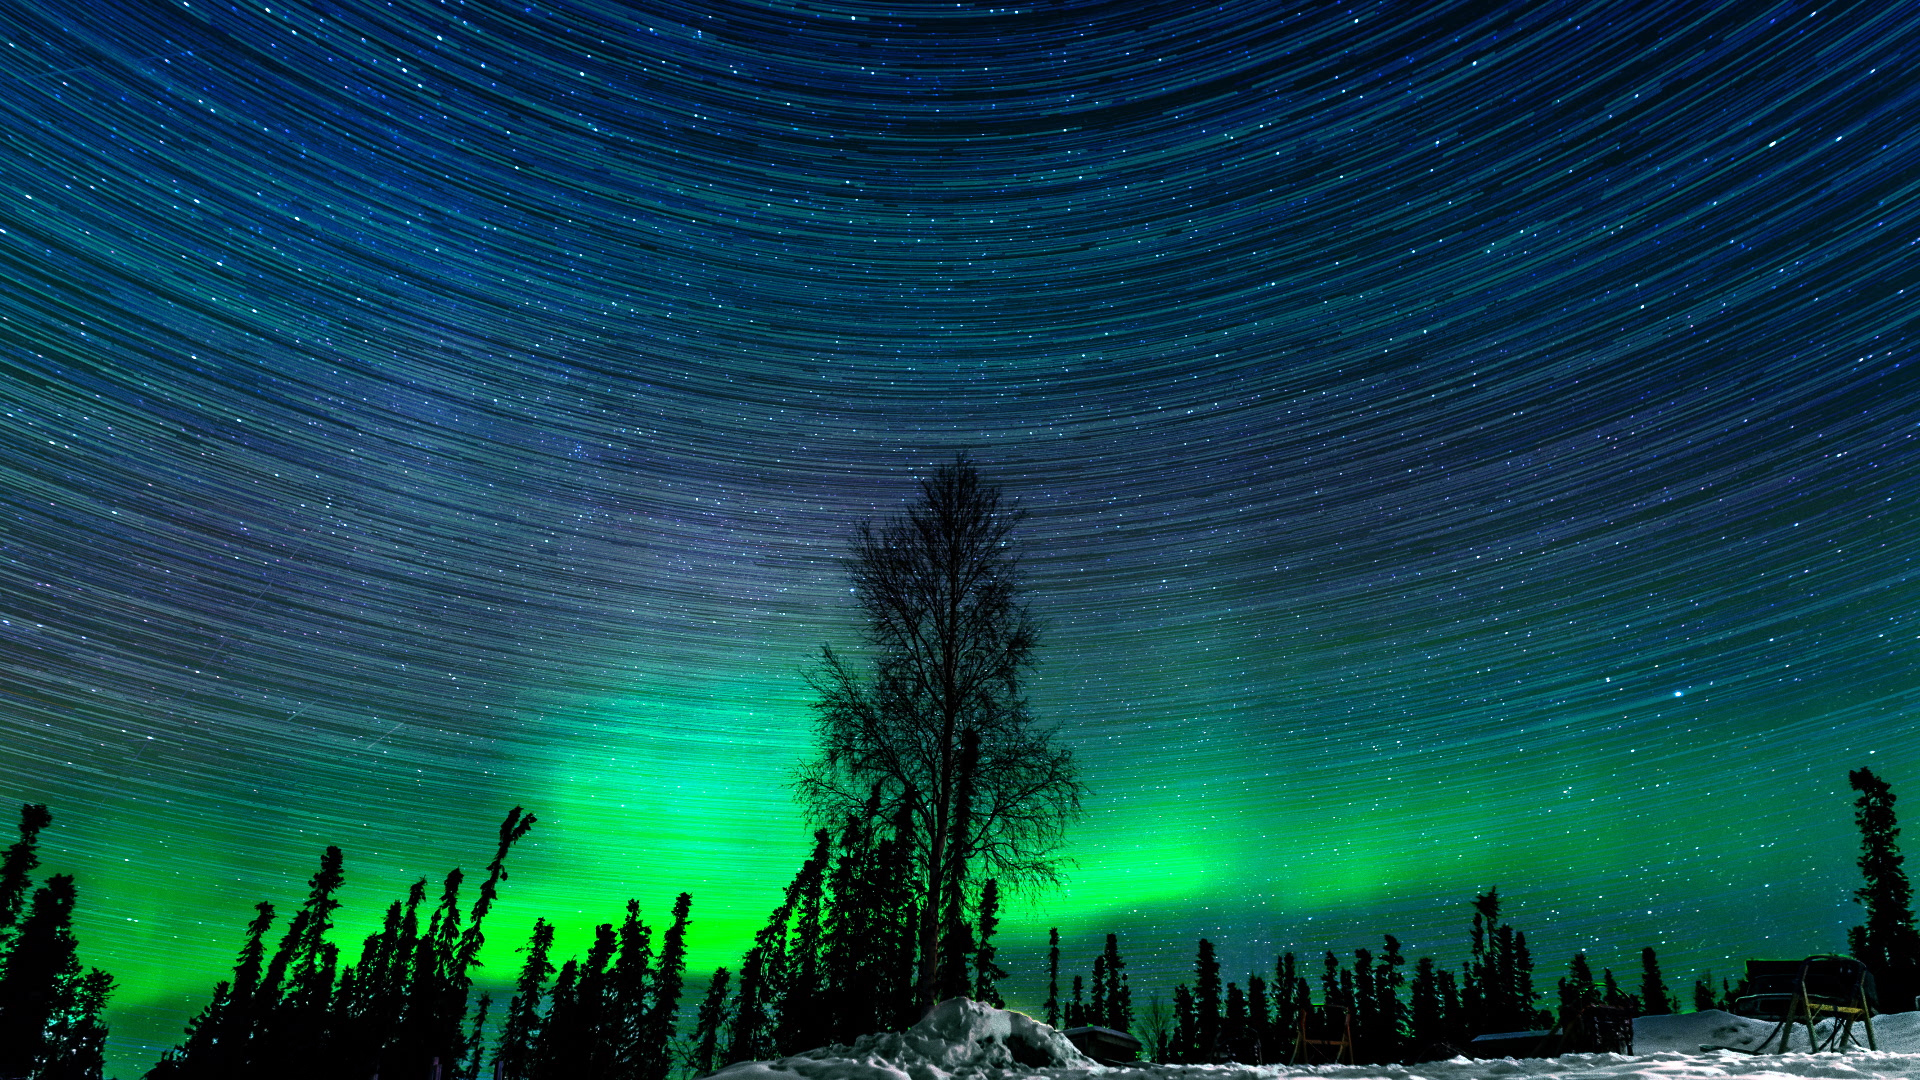 Northern Lights Wallpapers Free - Wallpaper Cave   Alaska Northern Lights Wallpaper